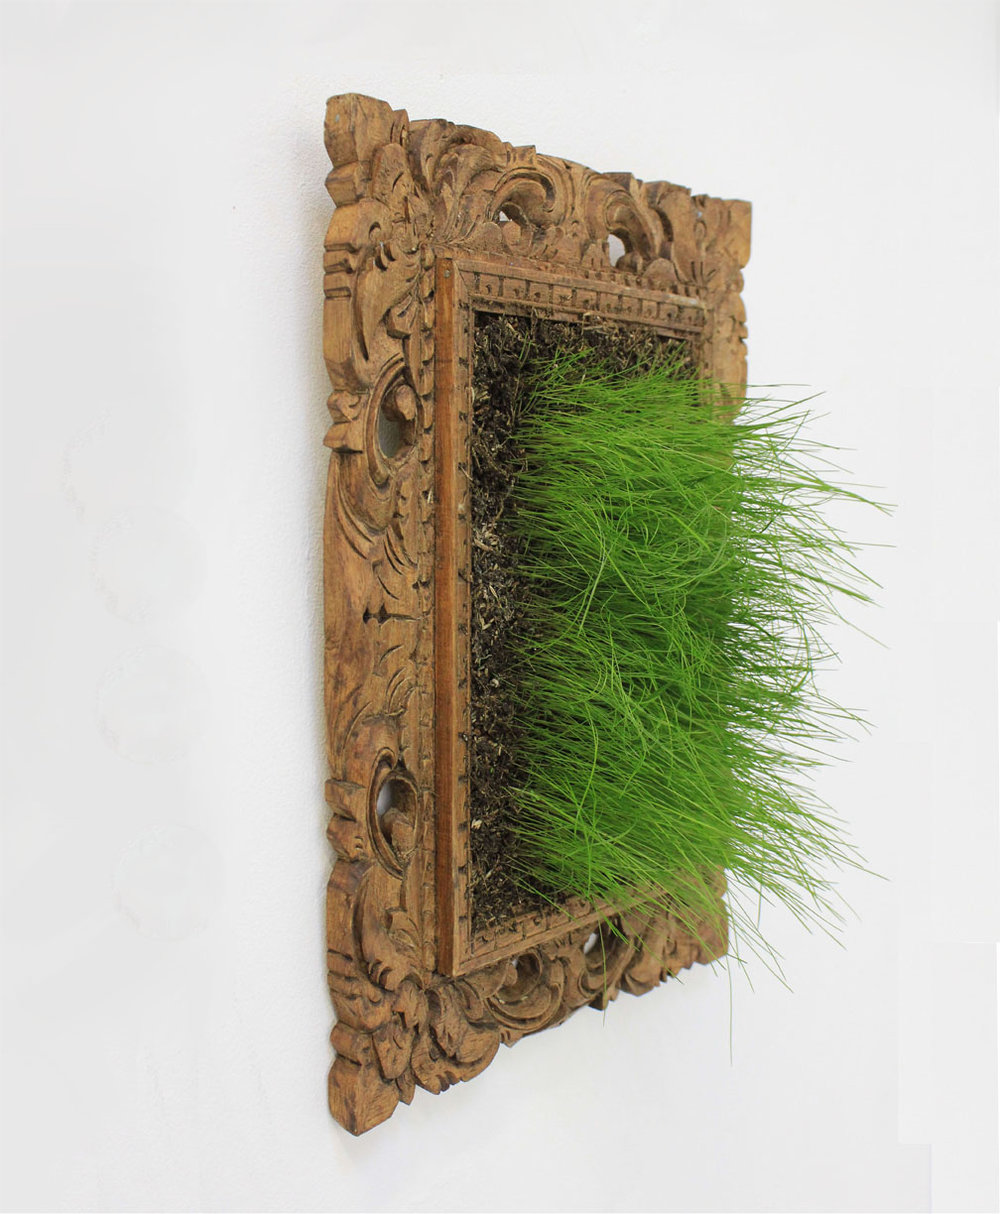 Grass in Frame Laura Phelps Rogers 72dpi.jpg